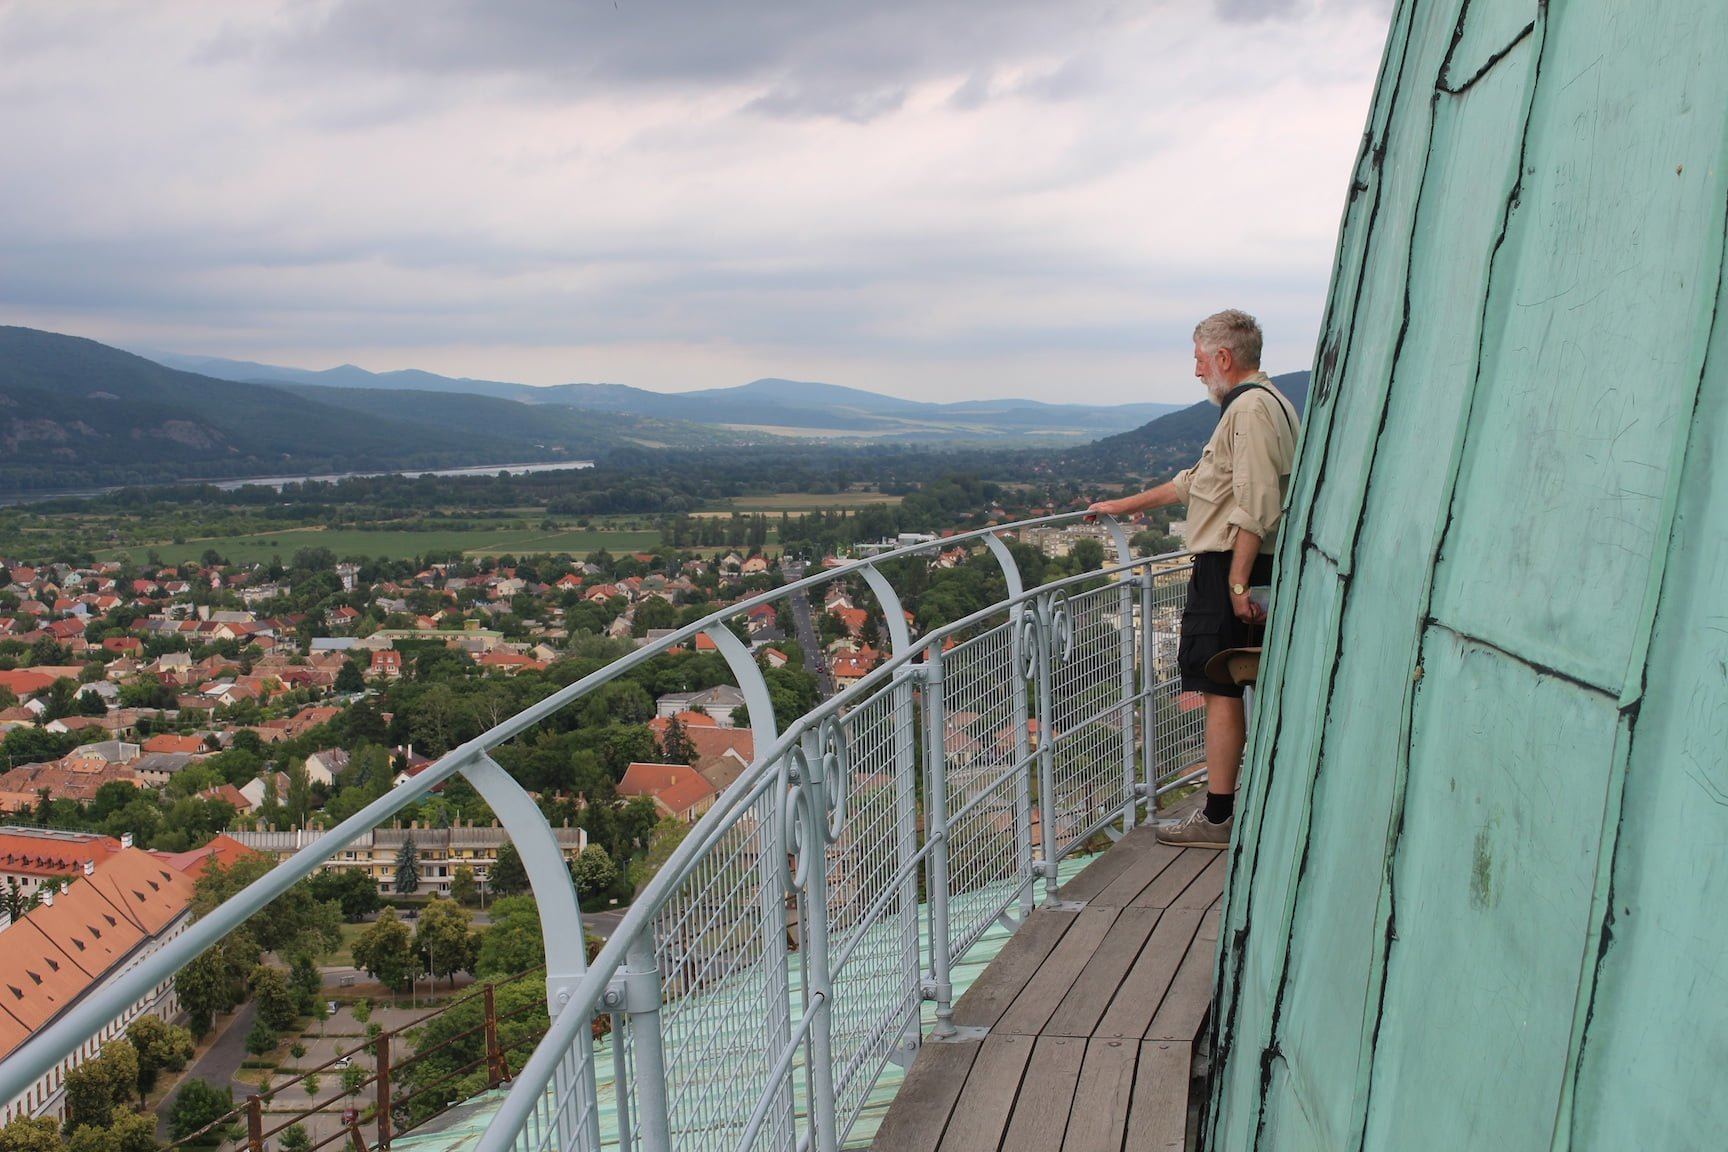 The Danube, and the plains of Hungary and Slovakia, from the dome of Esztergom Cathedral